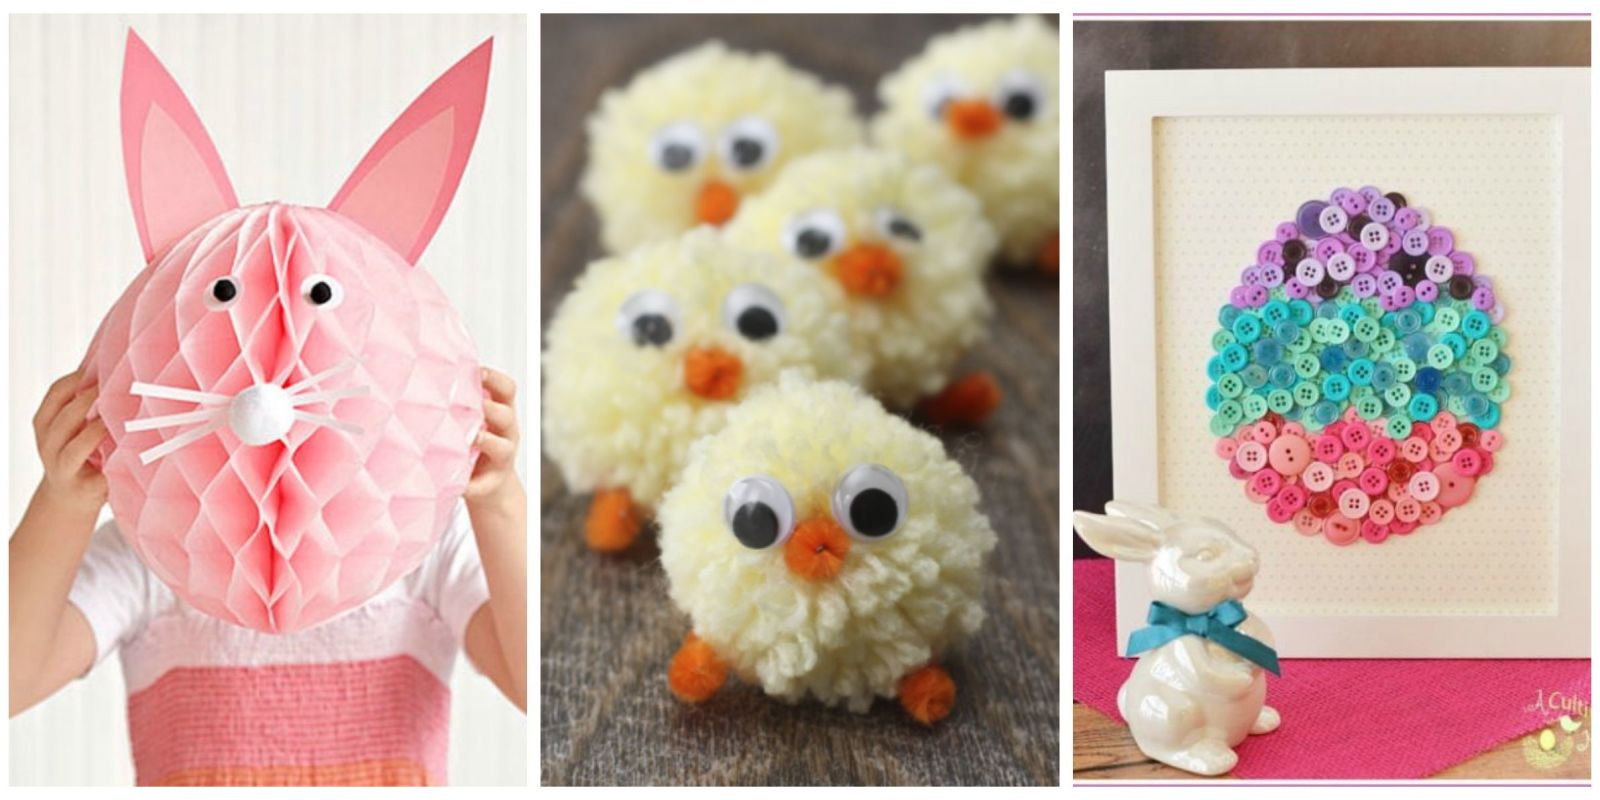 Easter crafts for kids fun diy ideas kid friendly